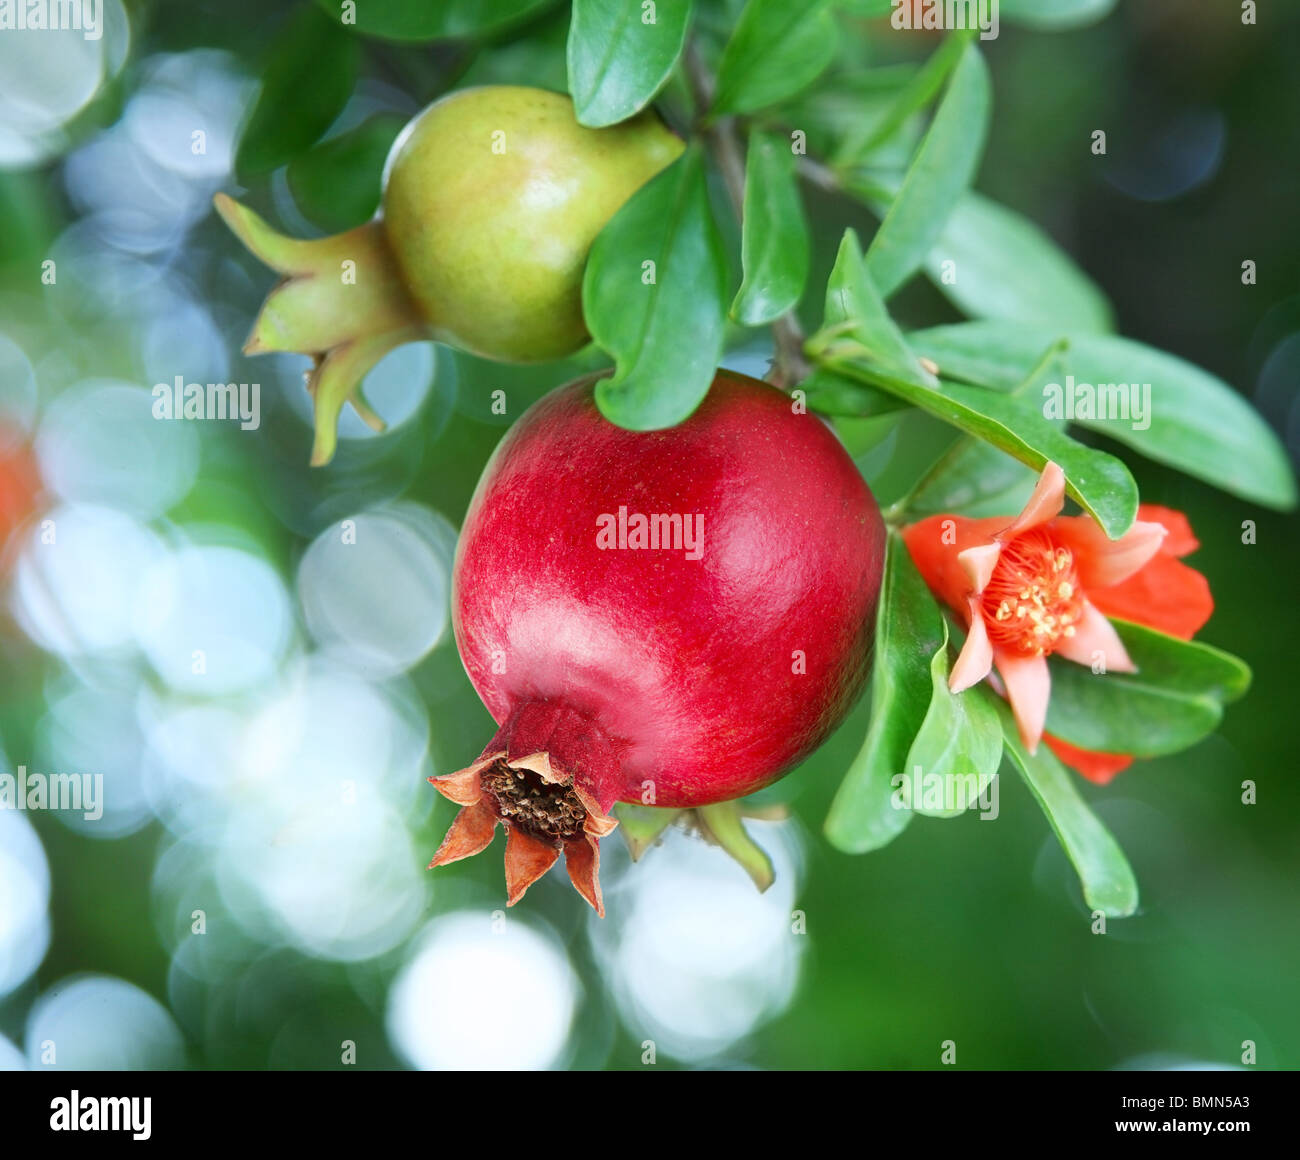 Branch with ripe pomegranate and pomegranate blossoms - Stock Image